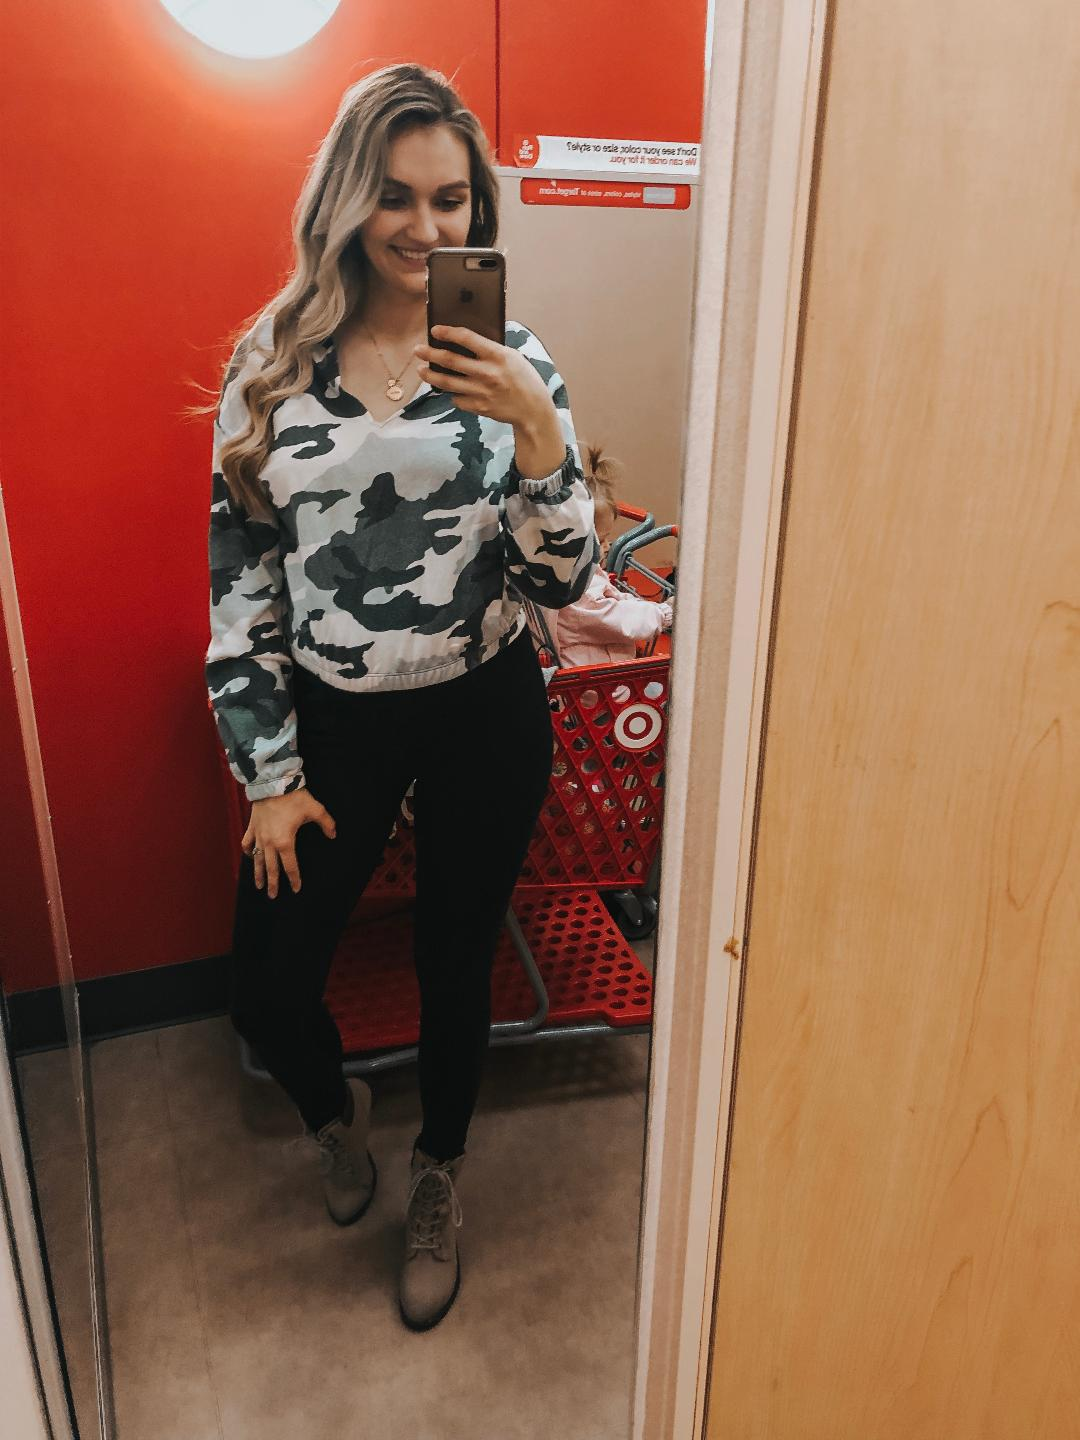 Camo Long sleeve  (TTS or slightly small, wearing large)   Maternity leggings  (Run big- wearing small)   Shoes  (sold out, but linked a very similar style for y'all)   NECKLACE  (AN ANNIVERSARY PRESENT FROM MY HUSBAND. I SERIOUSLY LOVE IT SO MUCH.)